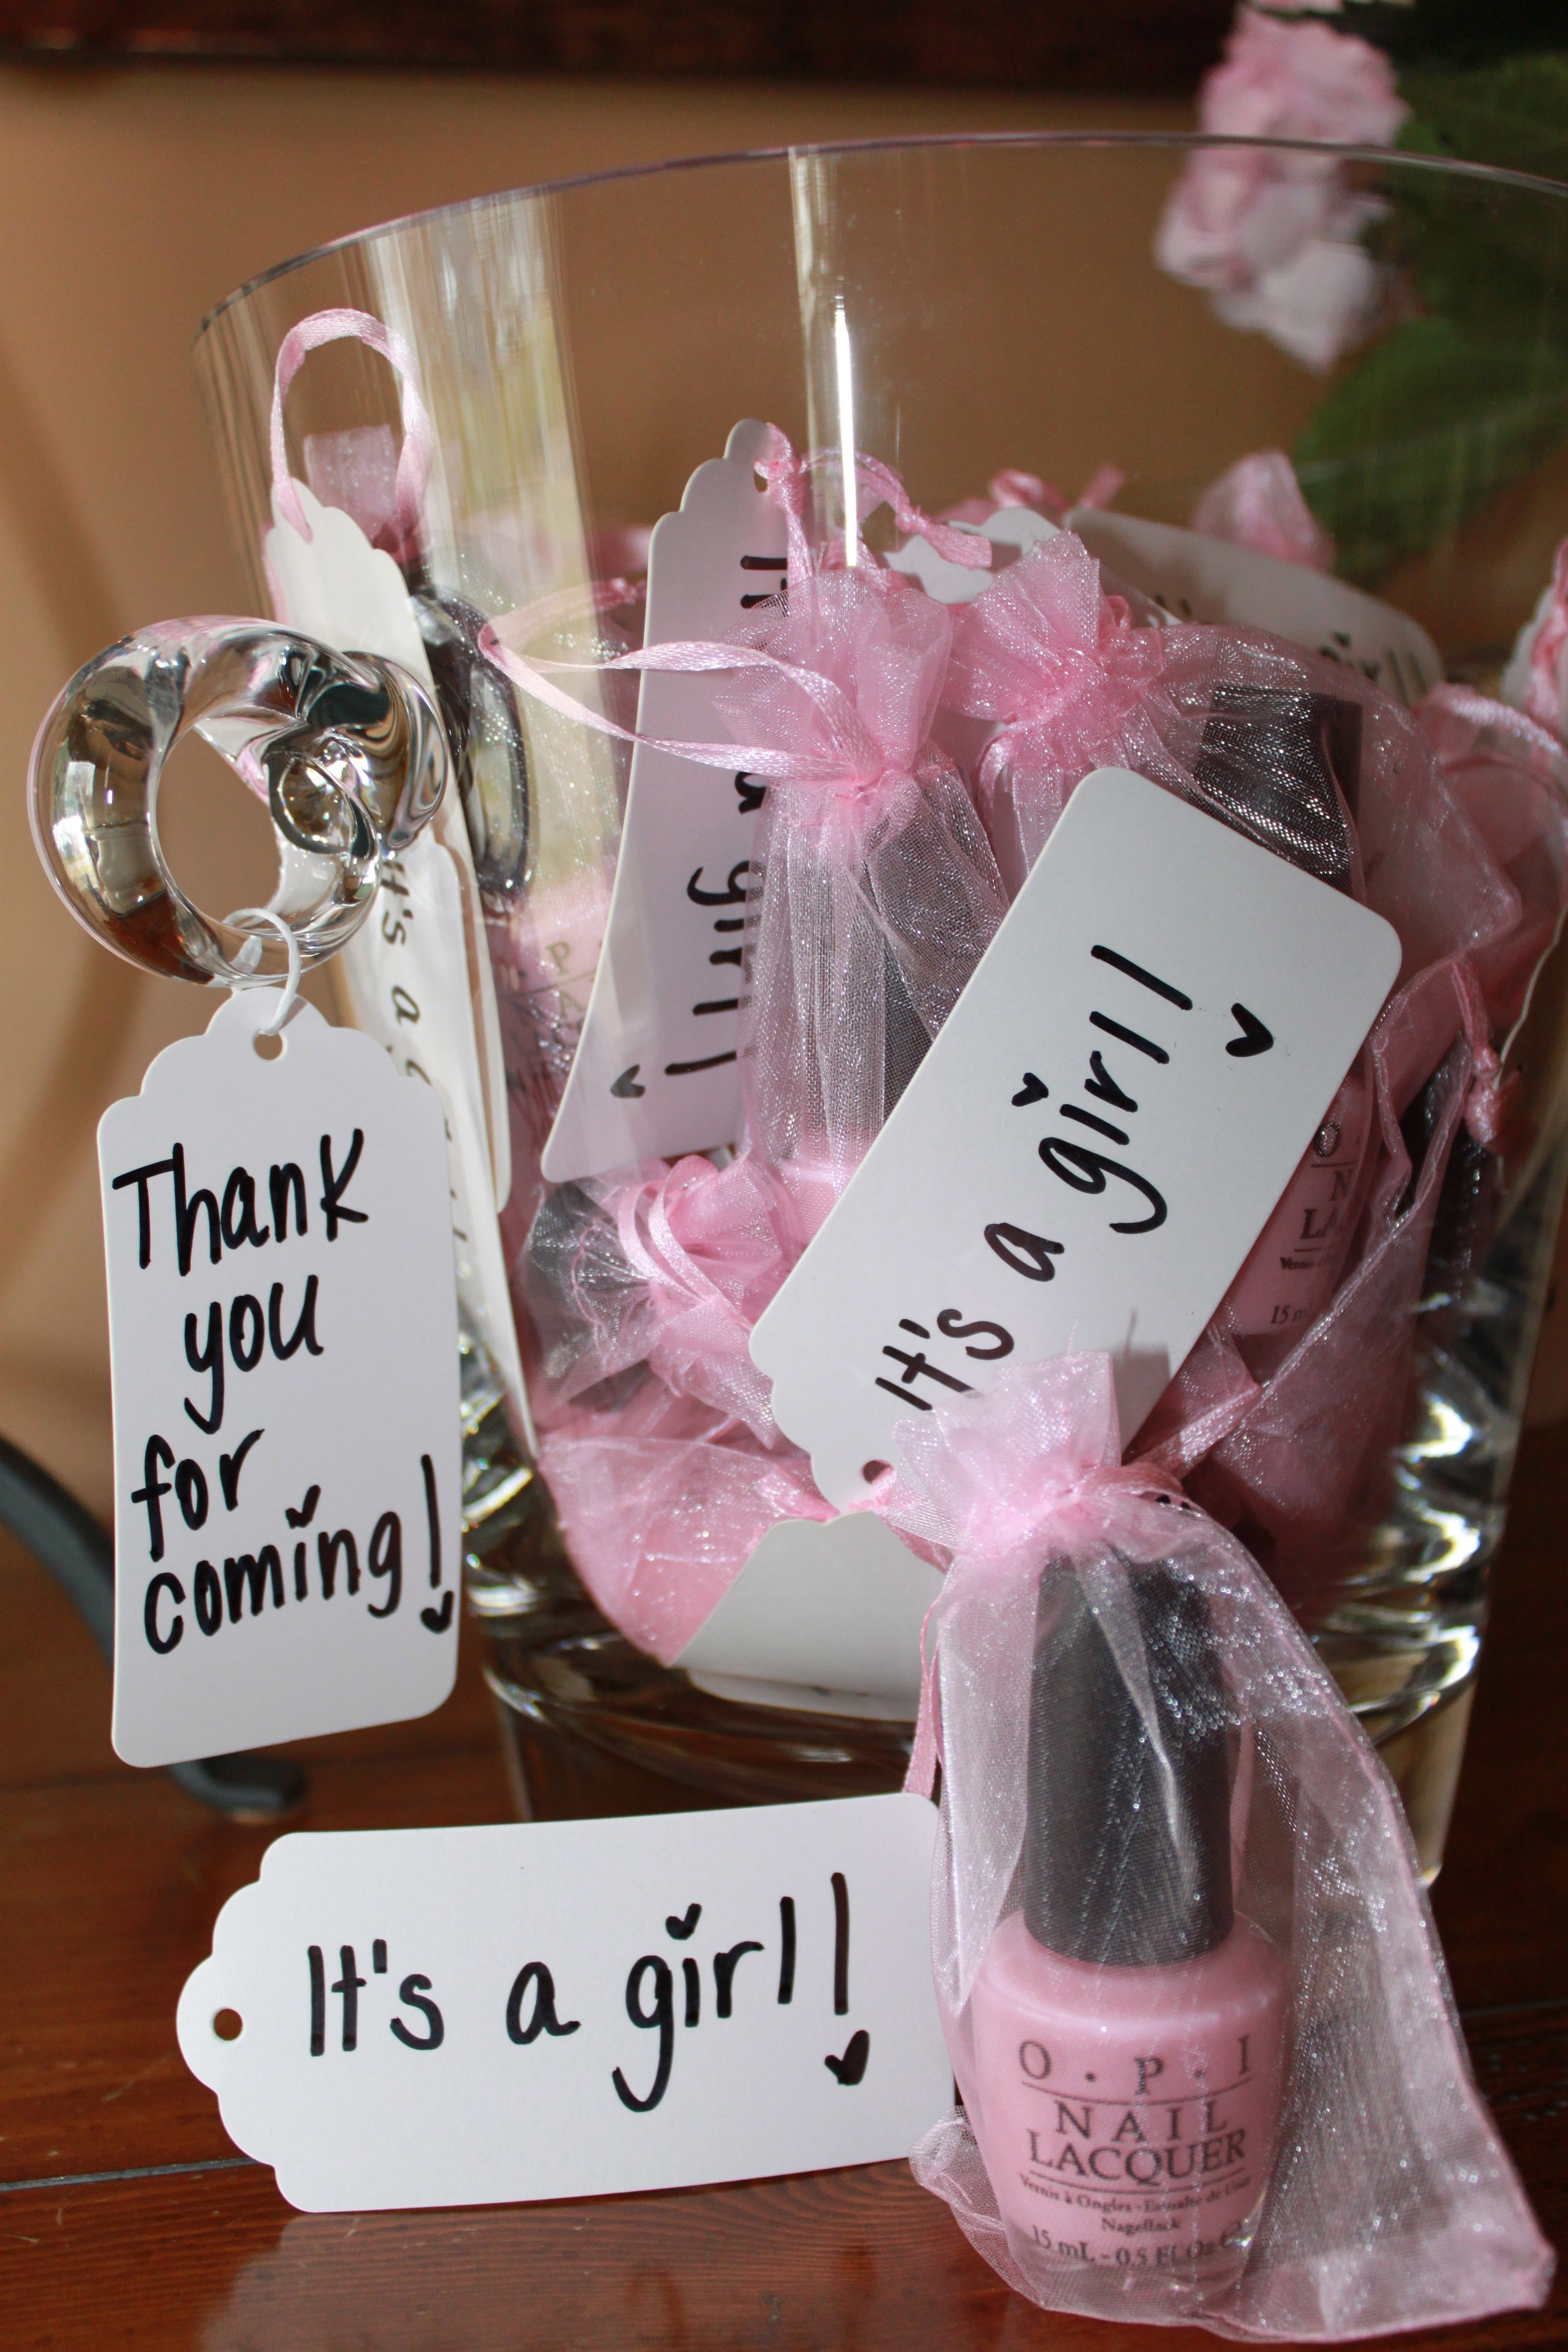 Baby shower favors for guests opi nail polish in a cute